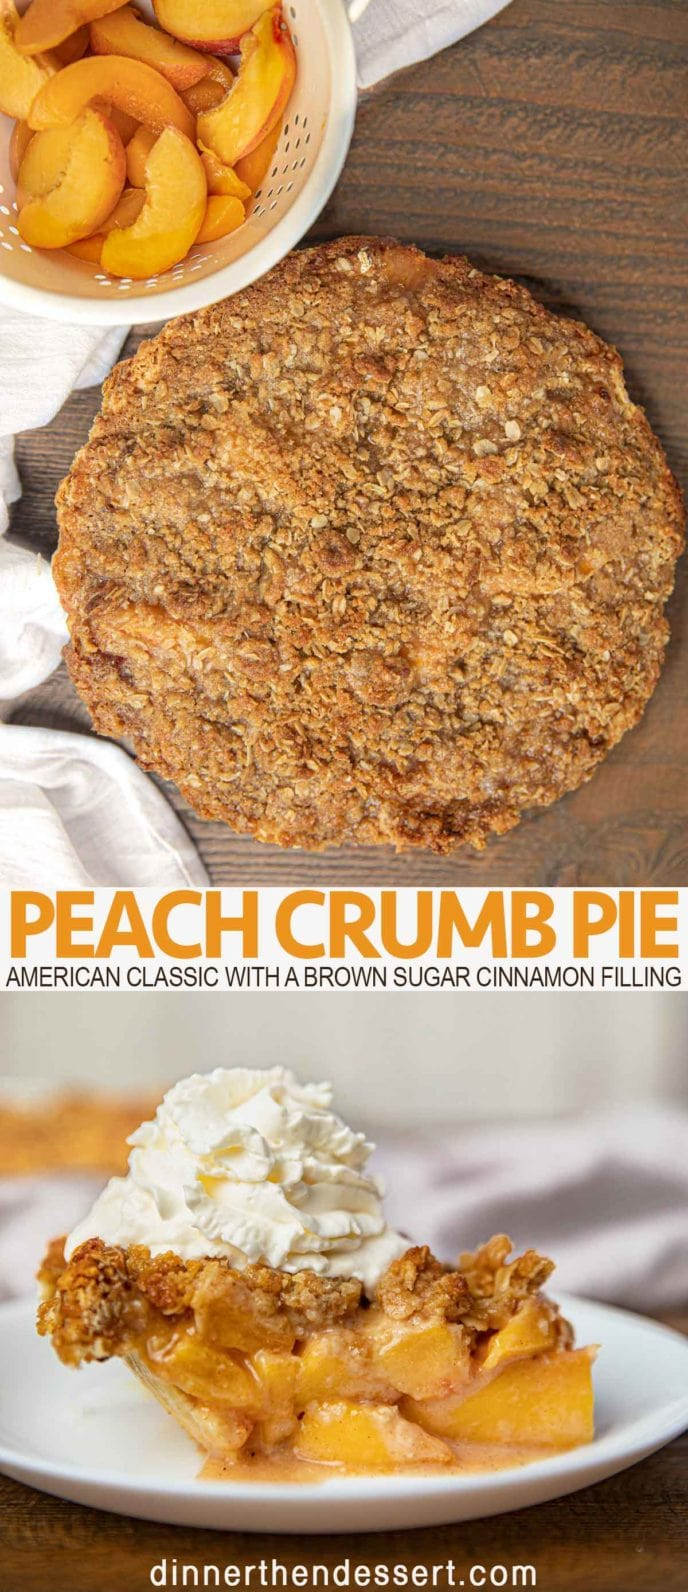 Peach crumb pie from above and sliced